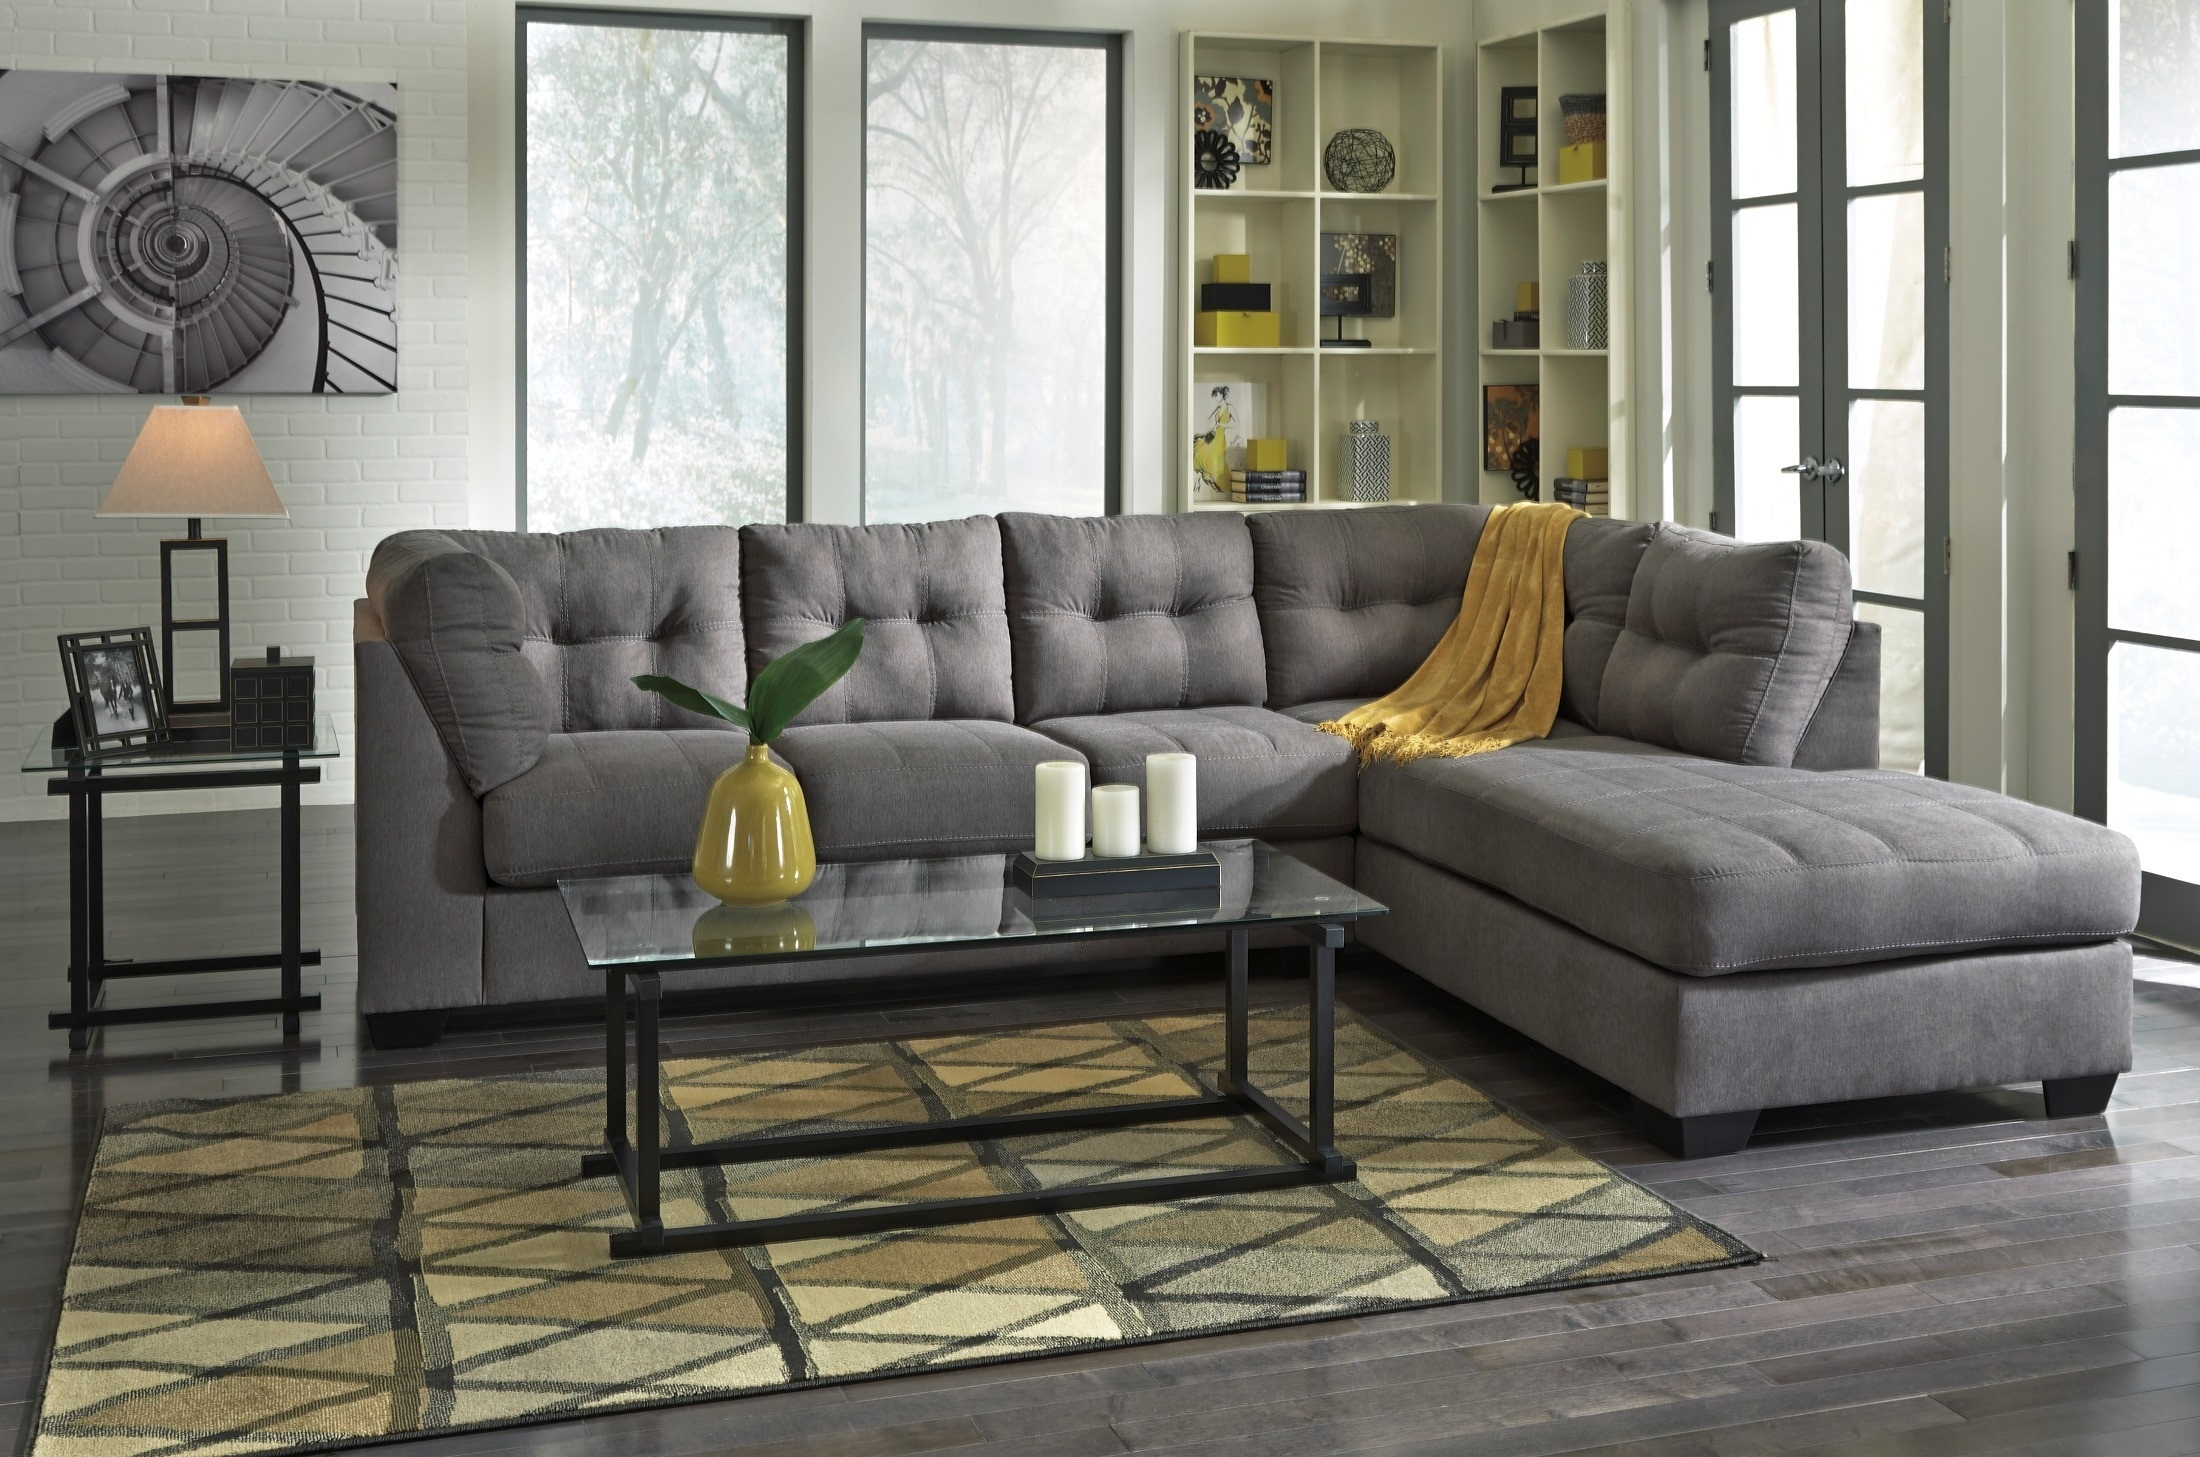 Maier Charcoal Raf Sectional From Ashley (45200 17 66) | Coleman With Meyer 3 Piece Sectionals With Laf Chaise (View 13 of 25)